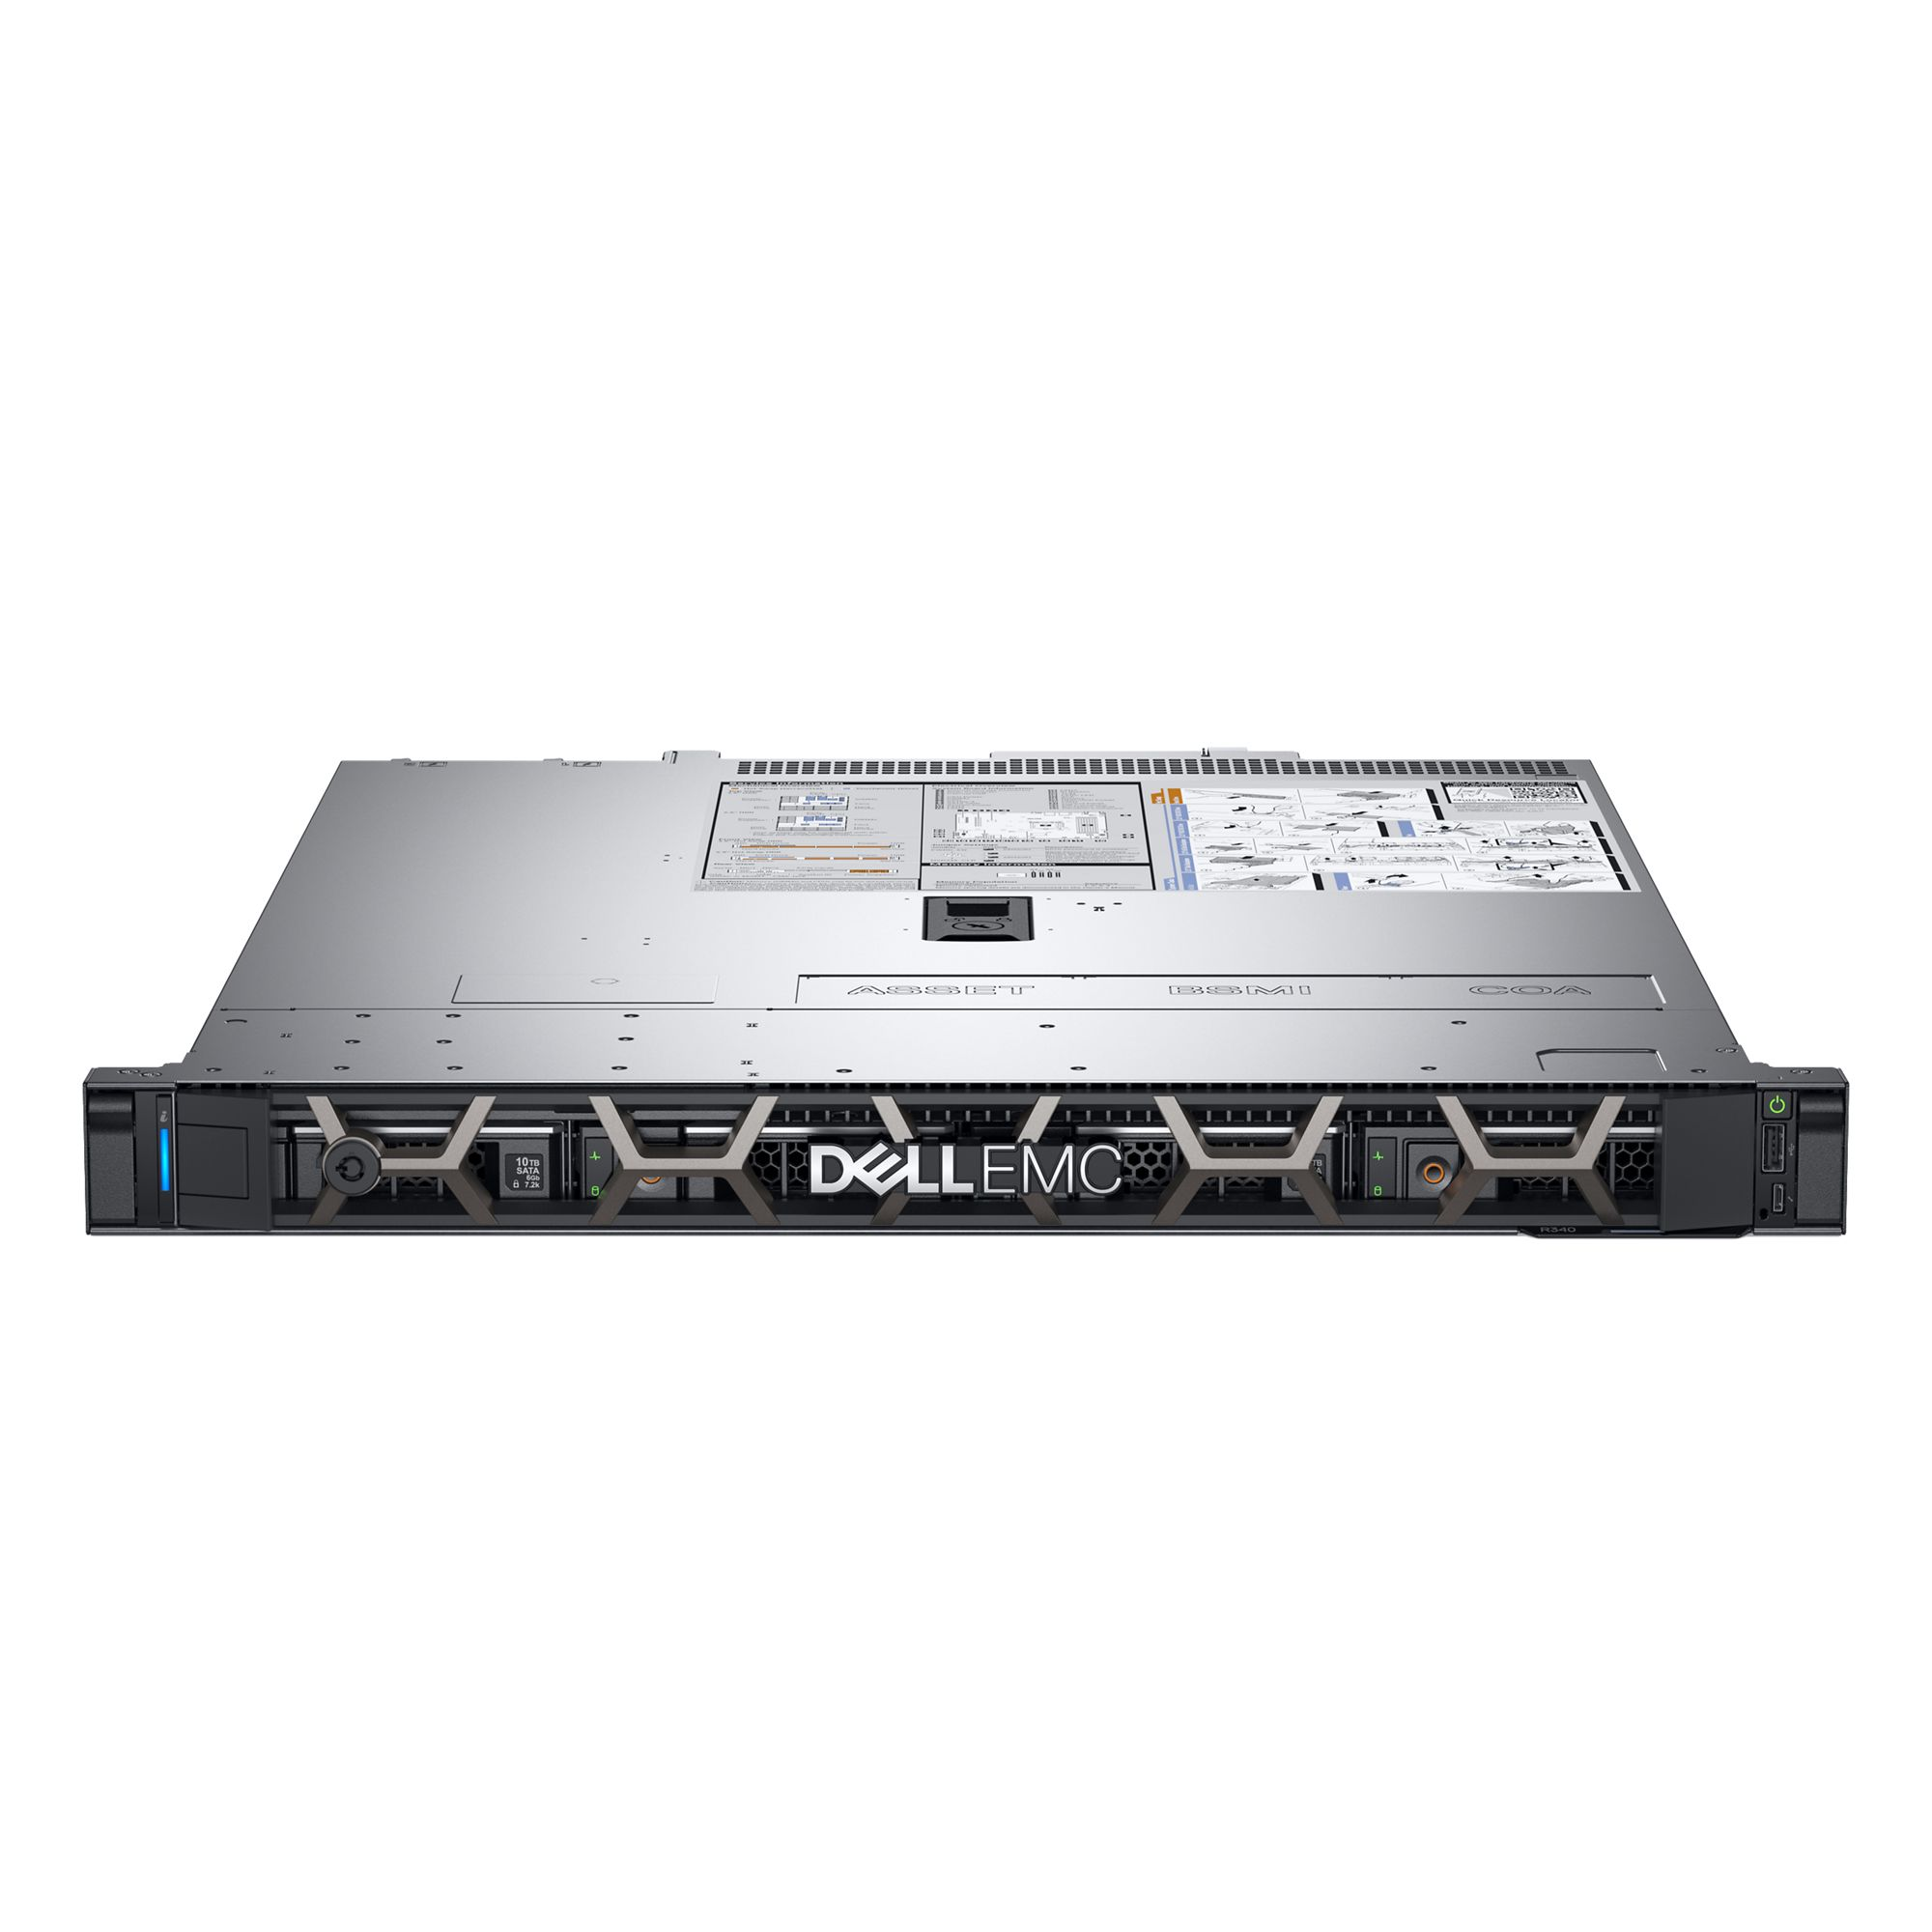 Serwer DELL PowerEdge R340 E-2124 8GB 300GB 15k HP H330 DVD-RW 1x350W 3yNBD